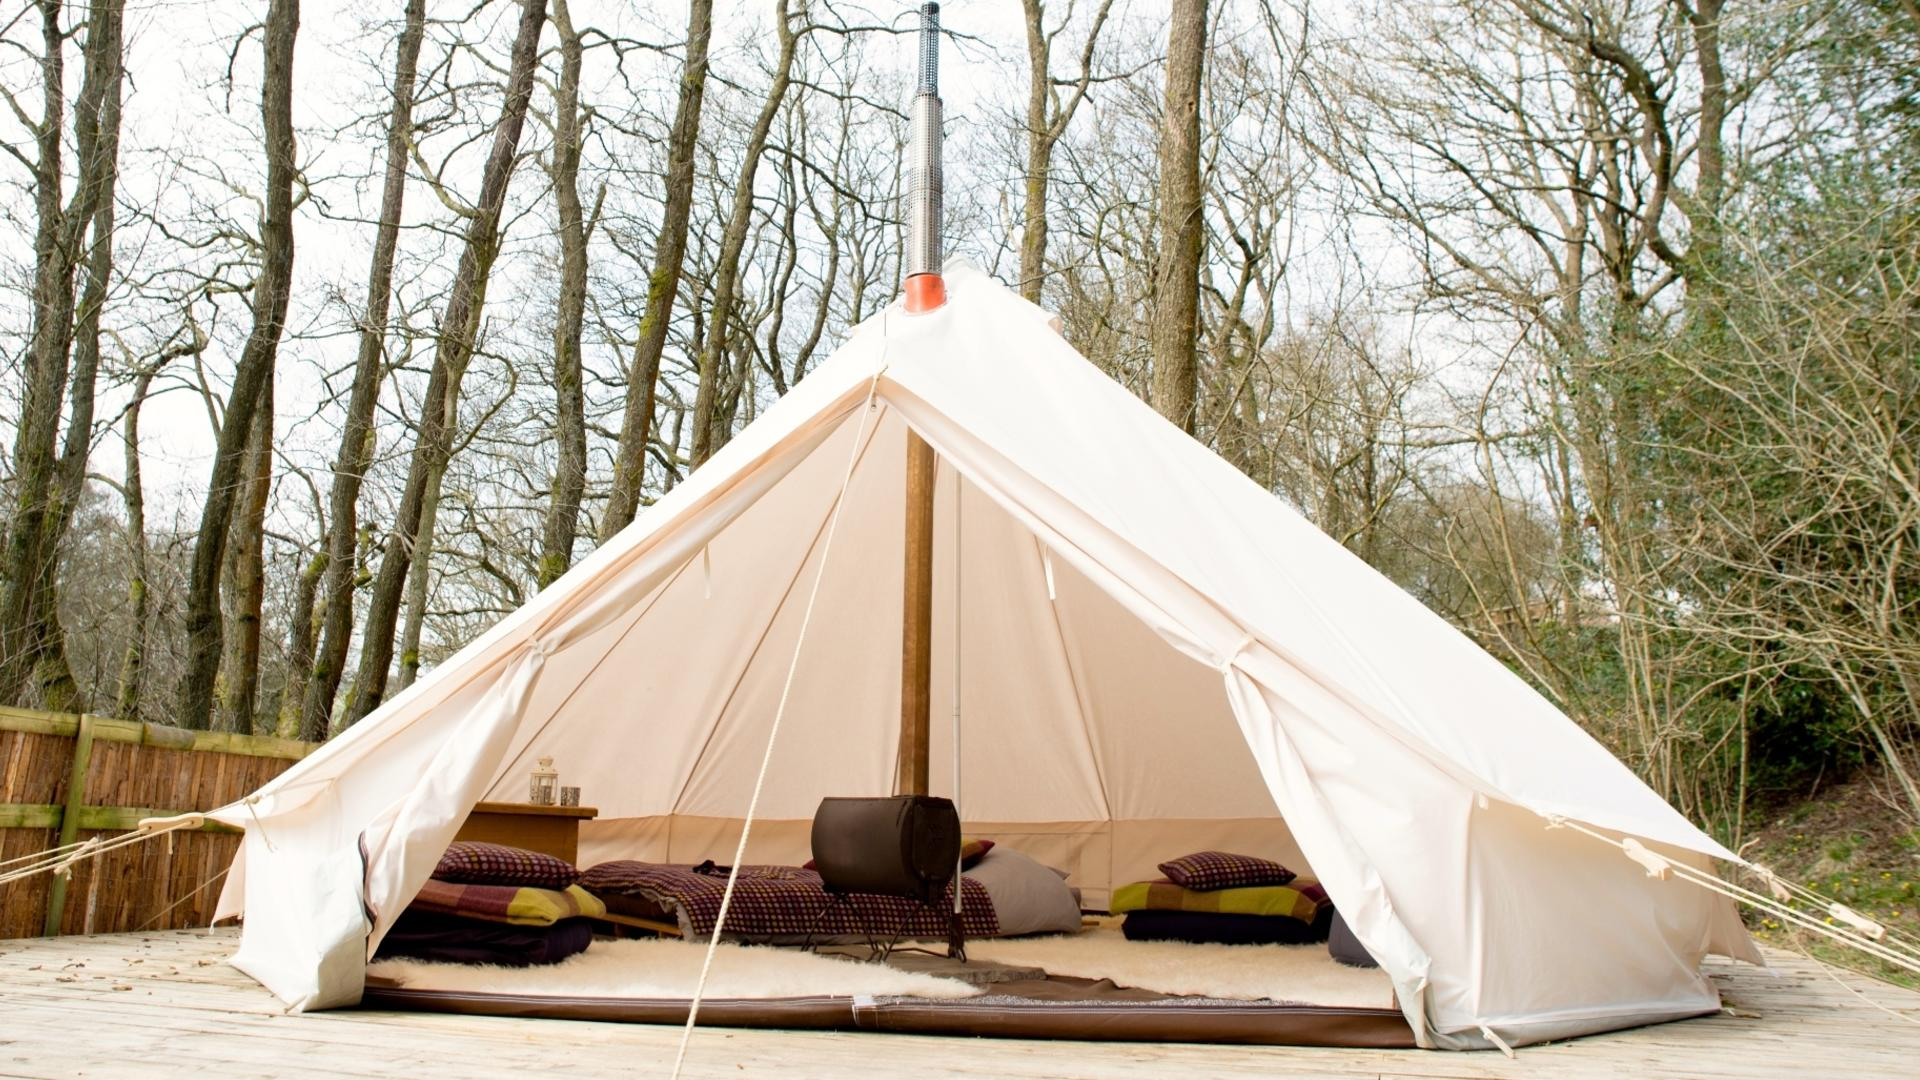 1 Bedroom Glamping/Tent in Wales, United Kingdom